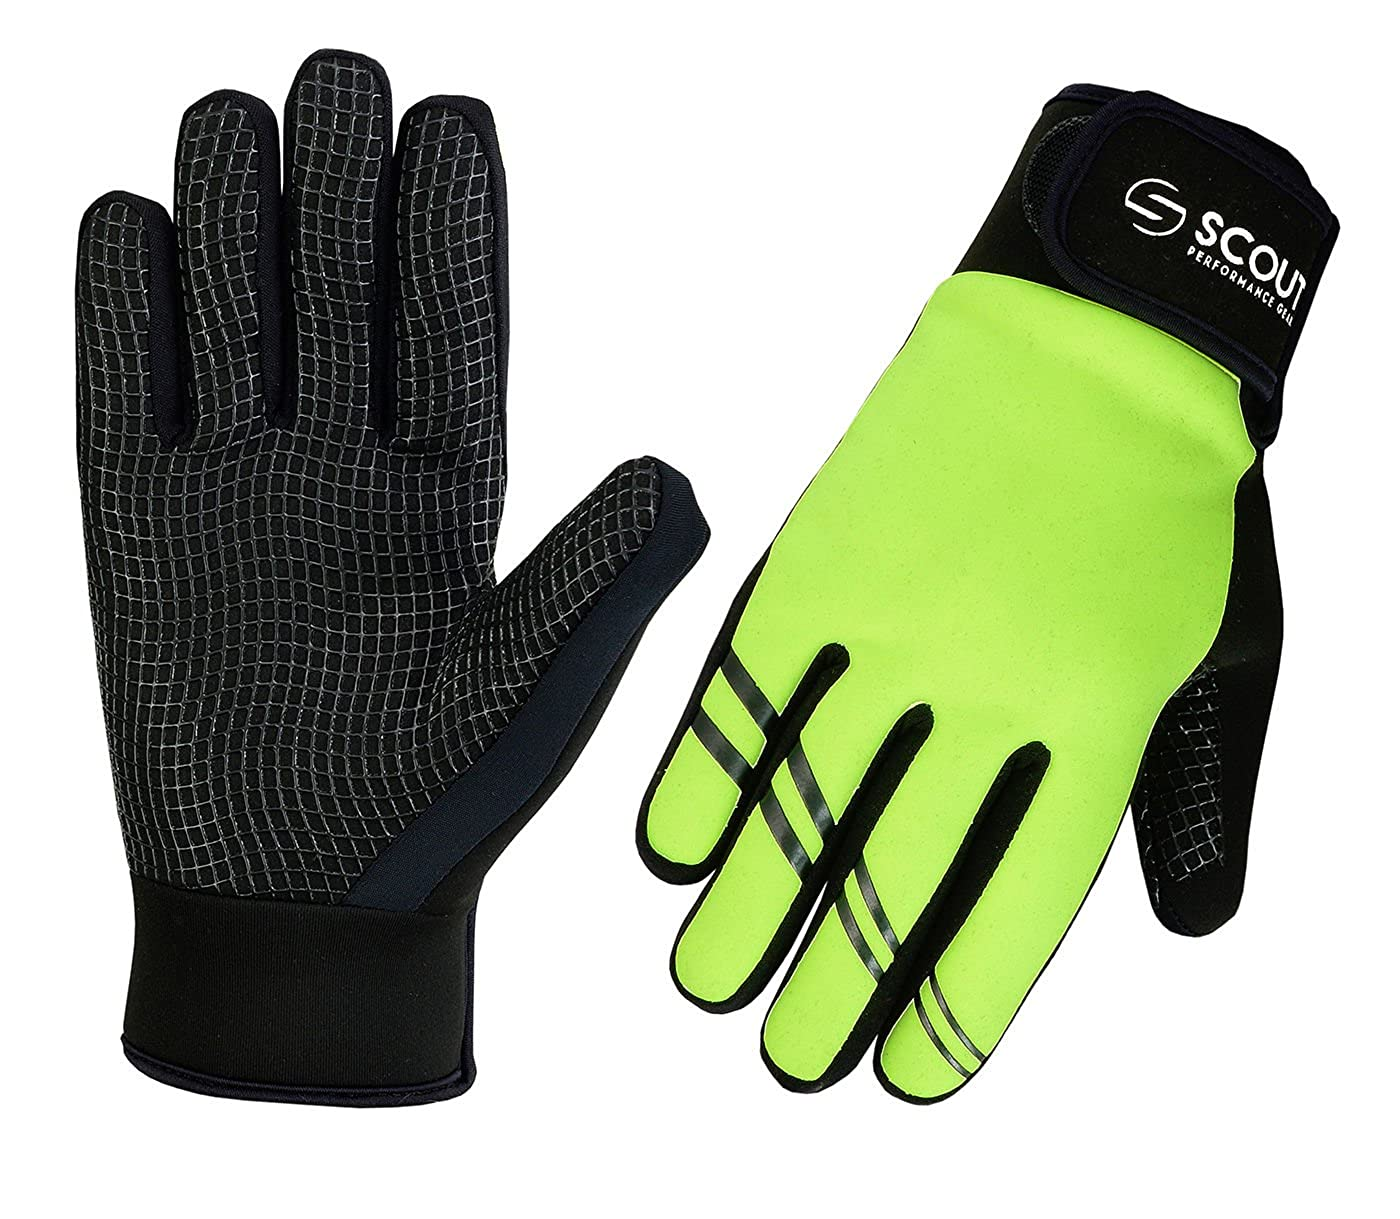 Winter Gloves Thermal Cotton Insulated Driving Ski Gloves For Men and Women Cold Proof